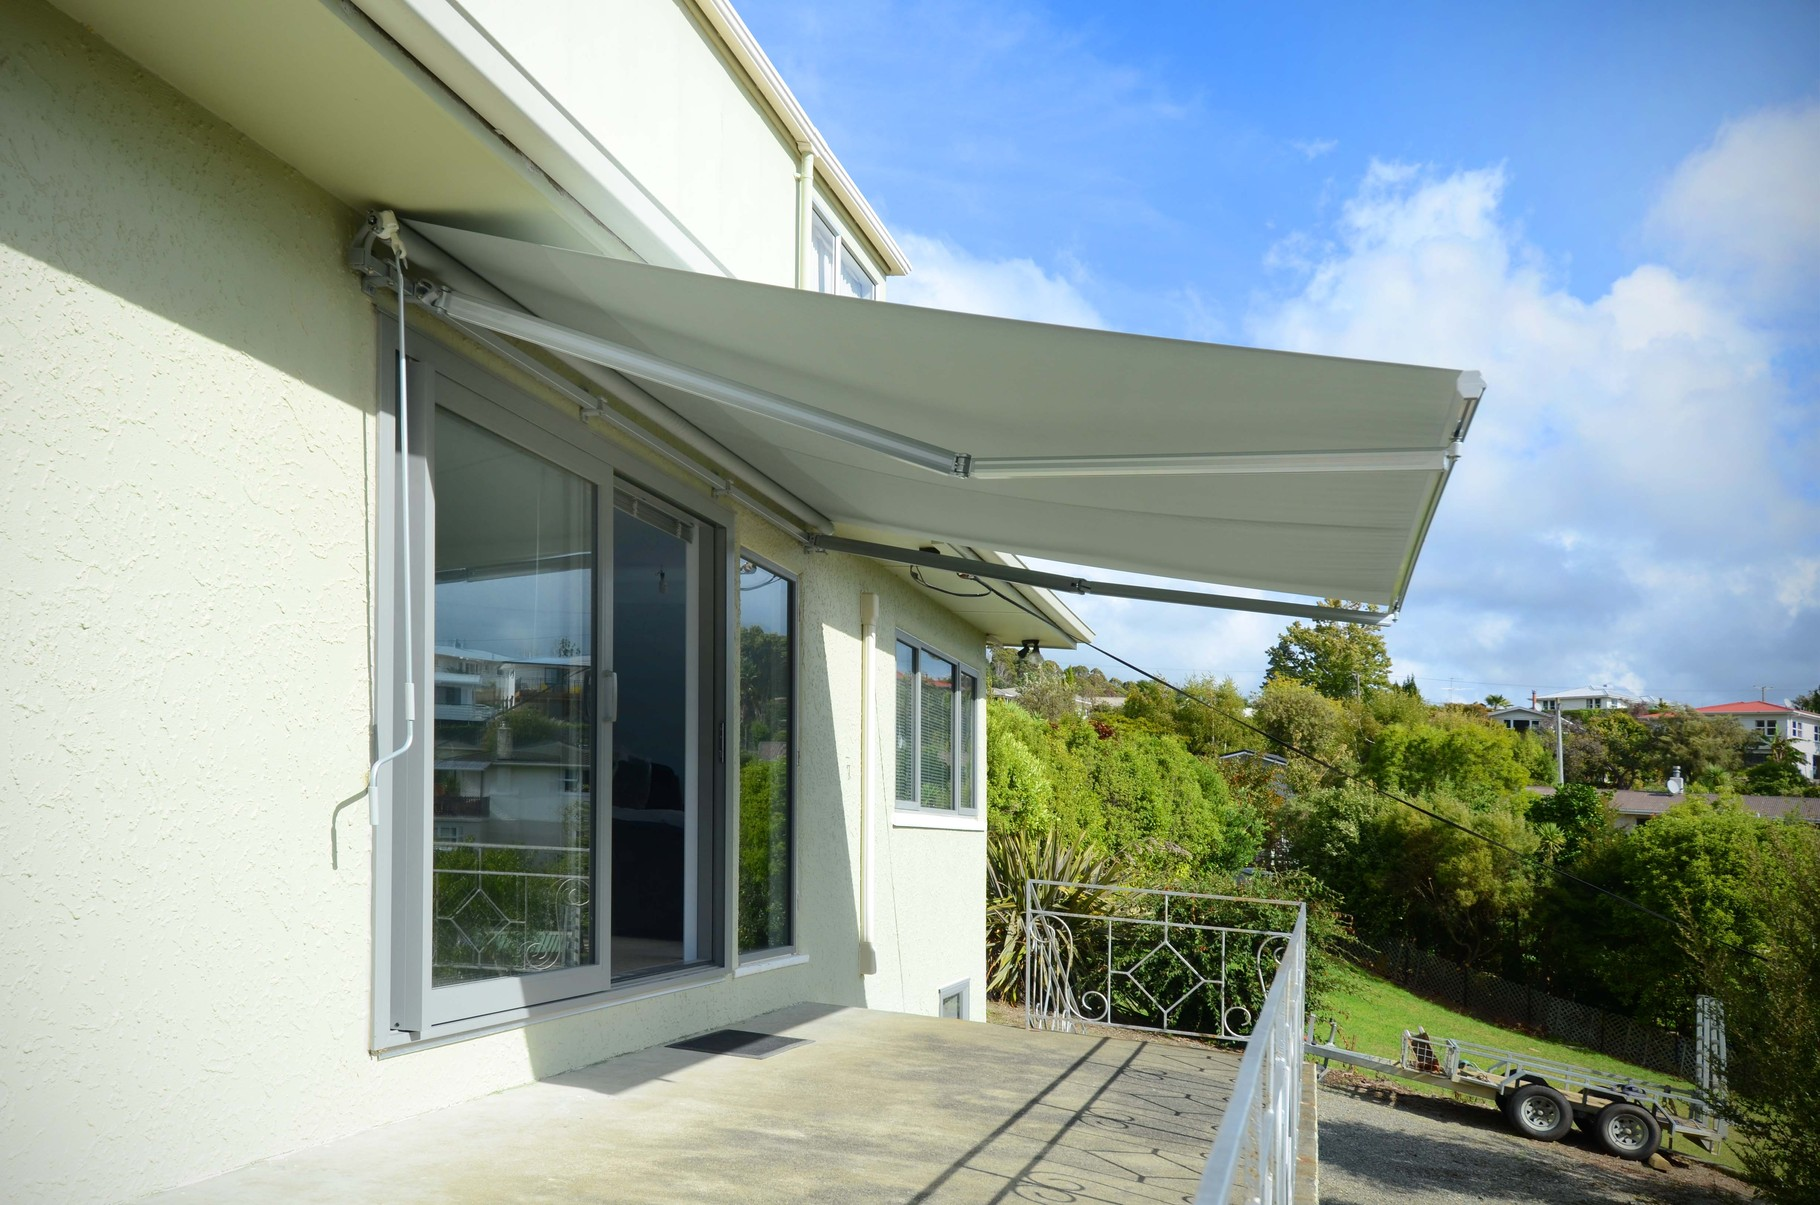 inc awning material bari lateral com awnings proview iproview video arm image gallery model retractableawnings suppliers